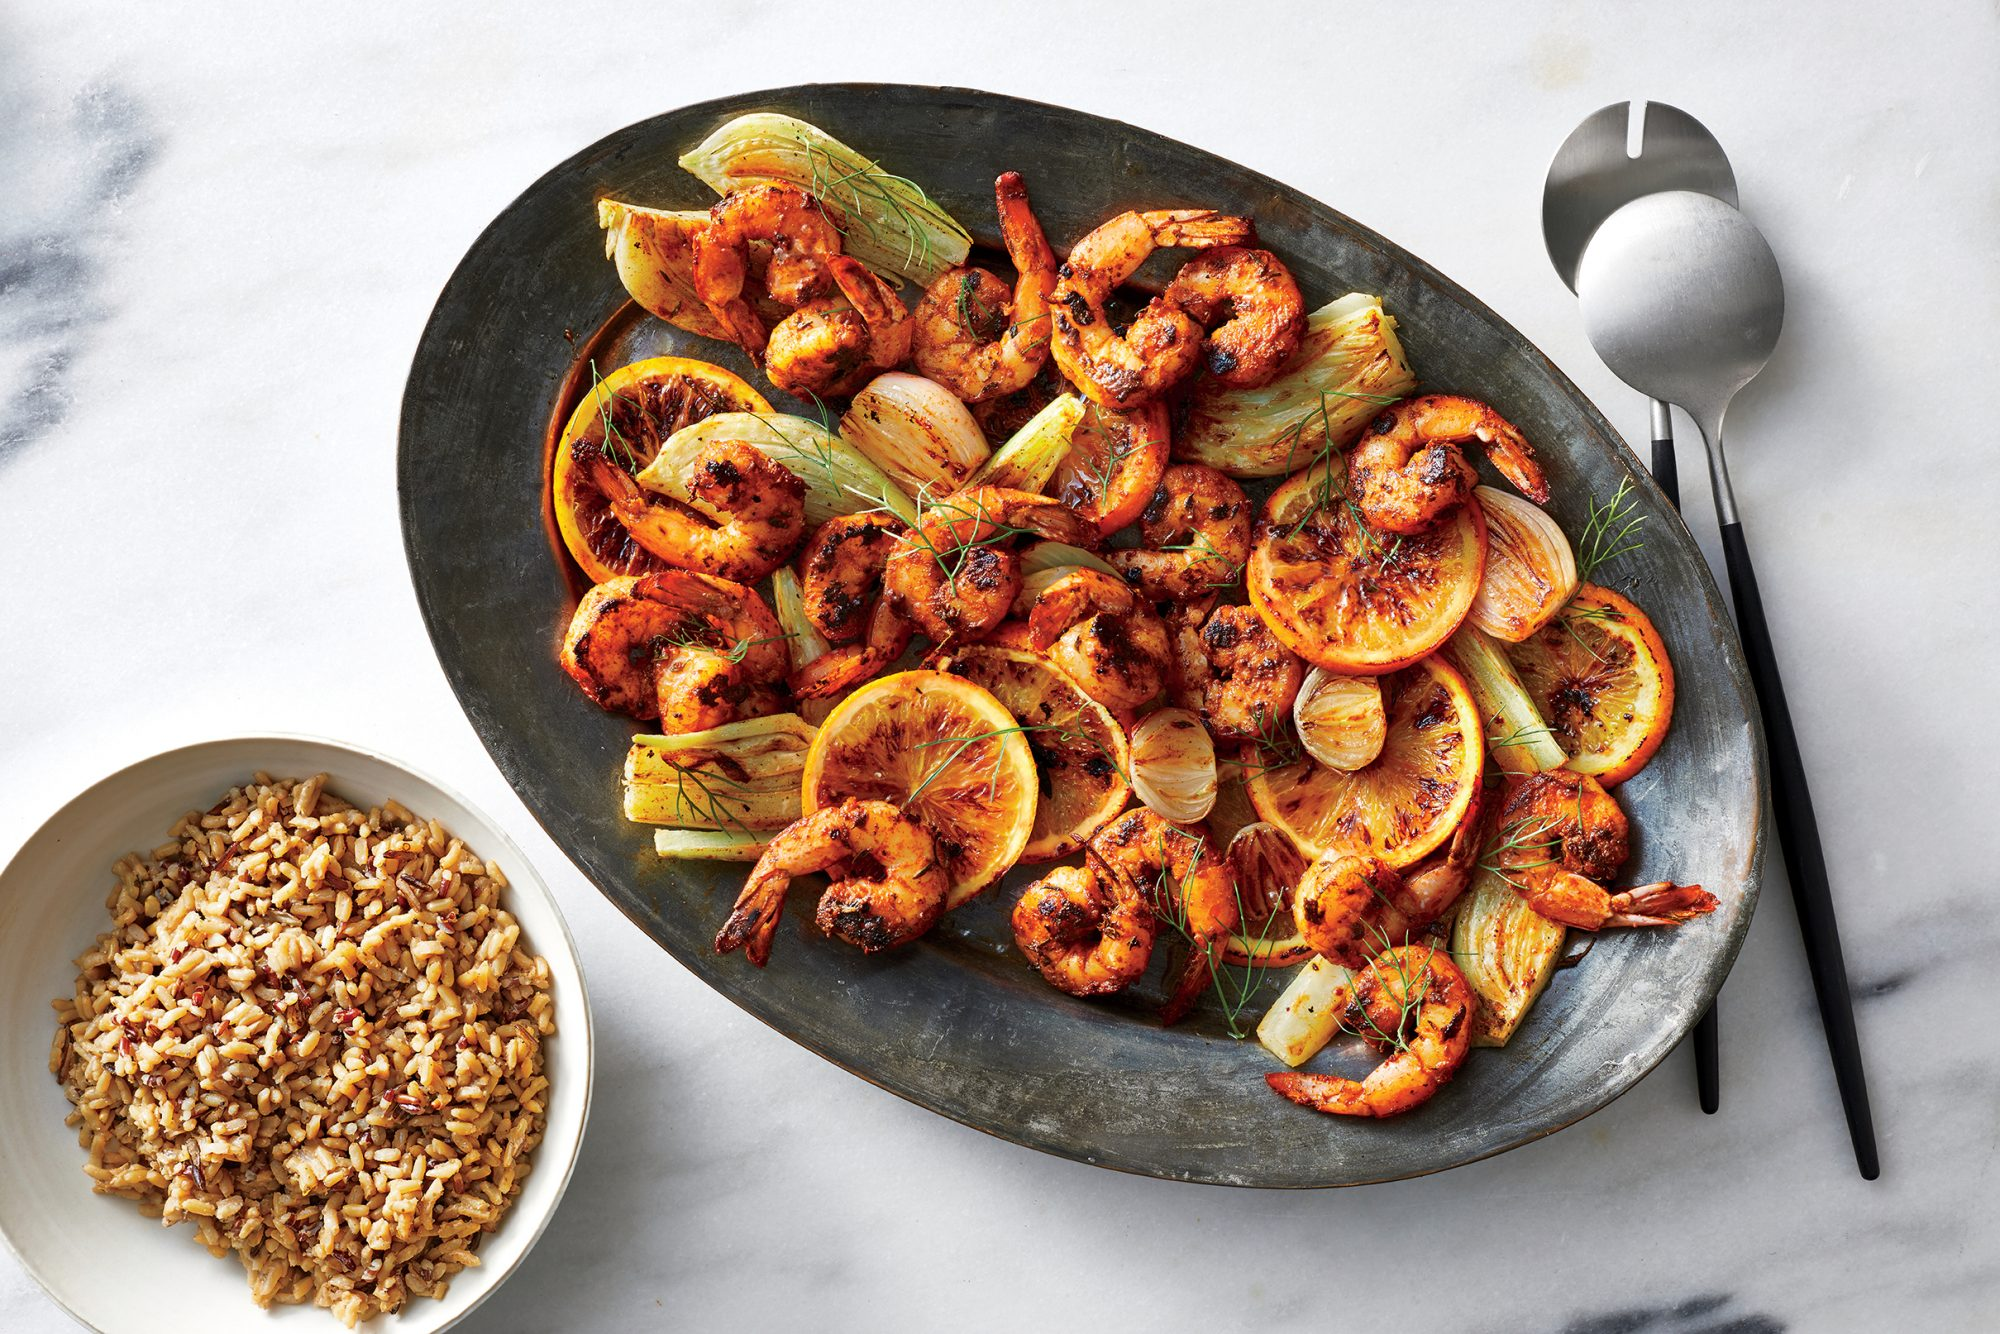 Blackened Shrimp with Citrus and Roasted Fennel